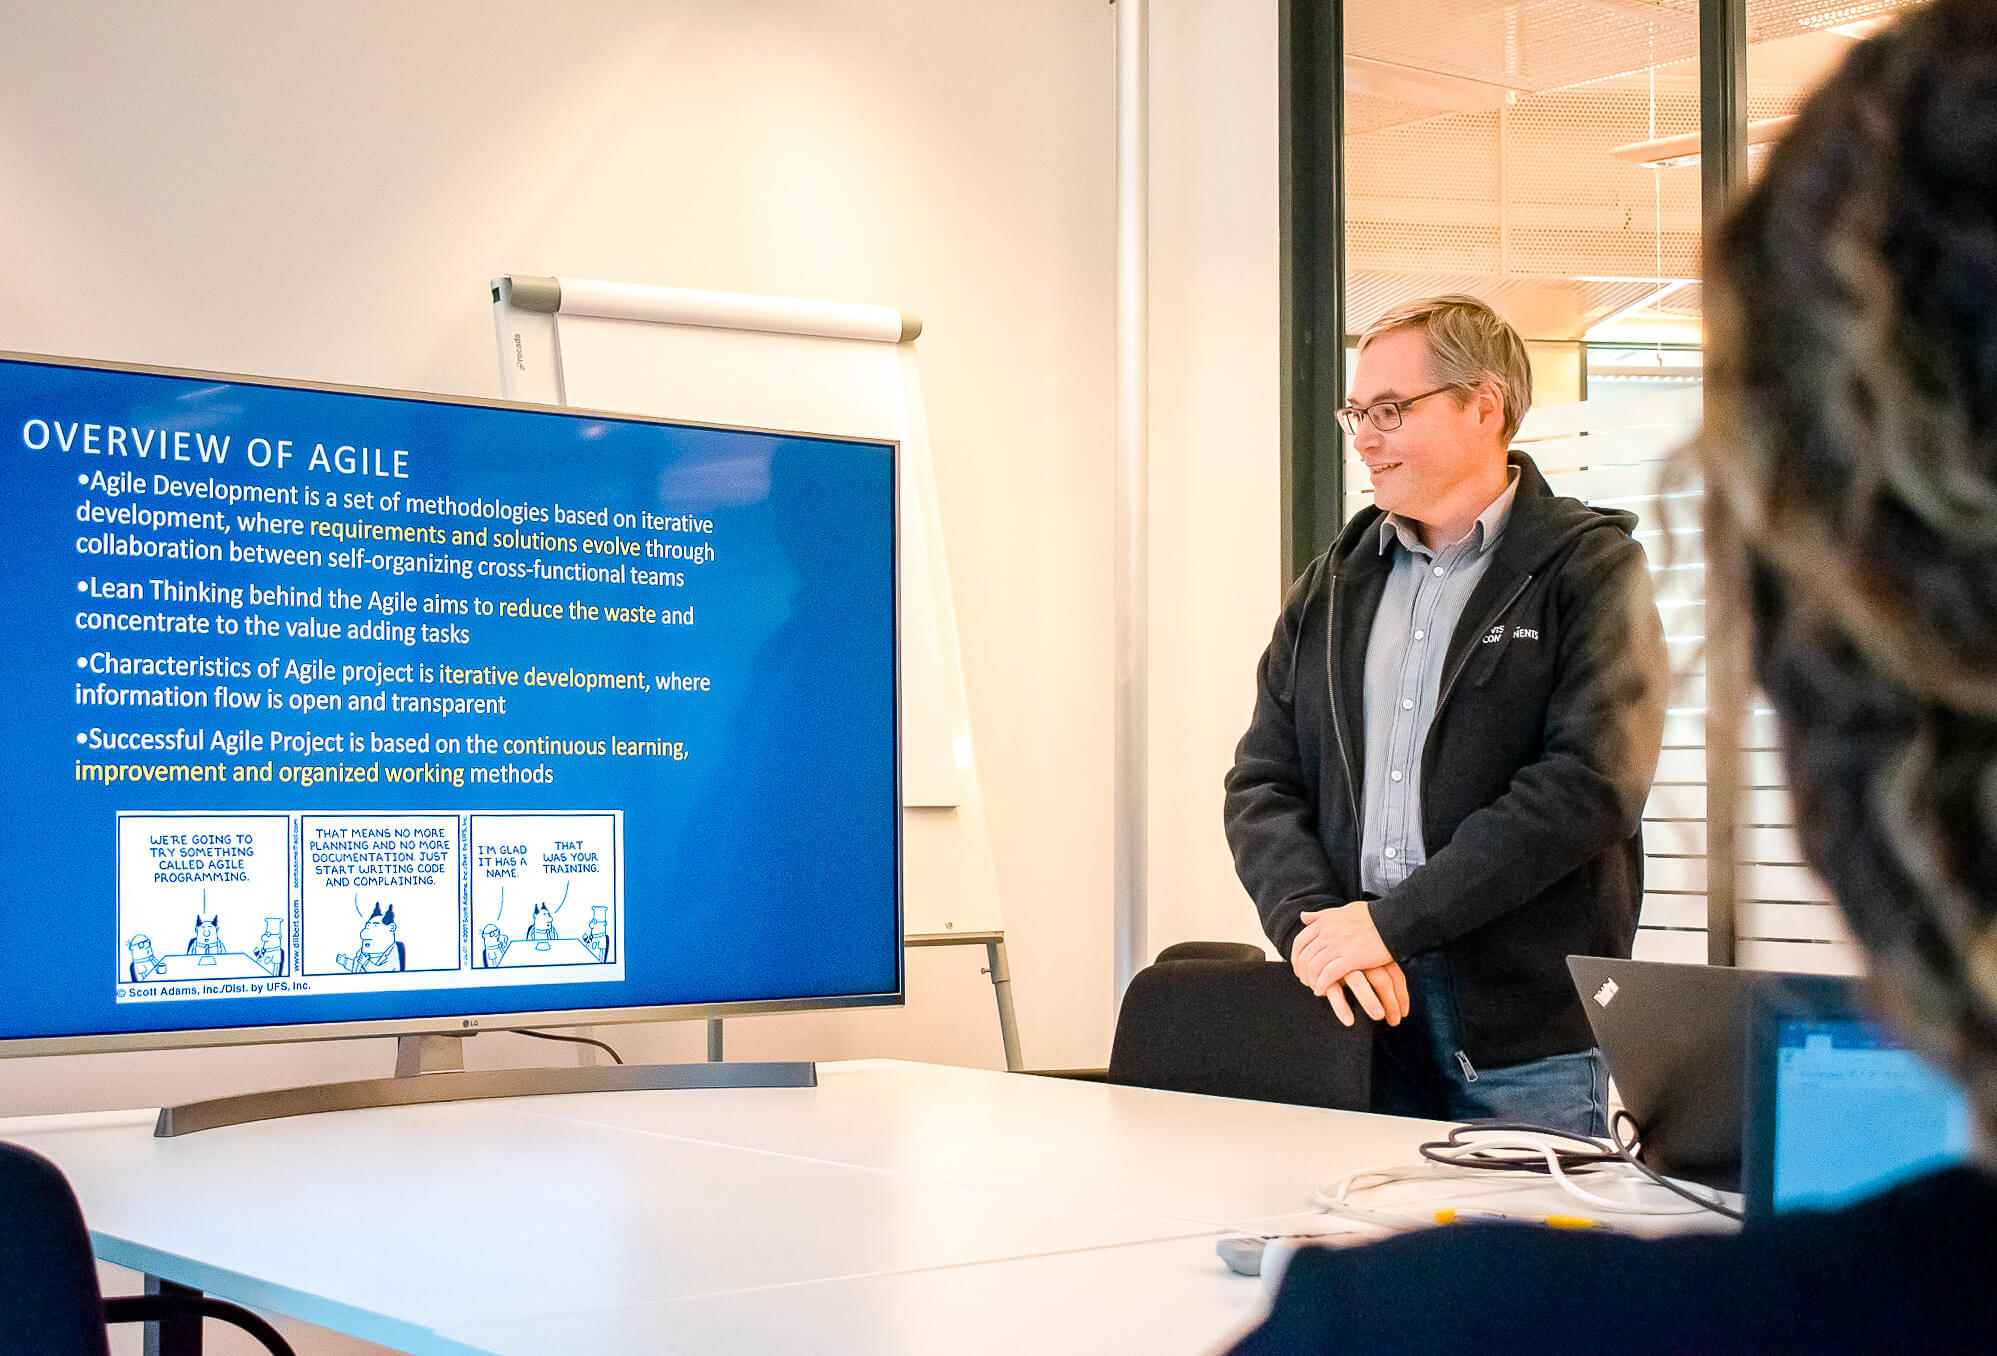 Project Management Office Manager Juha-Pekka lecturing on agile project development